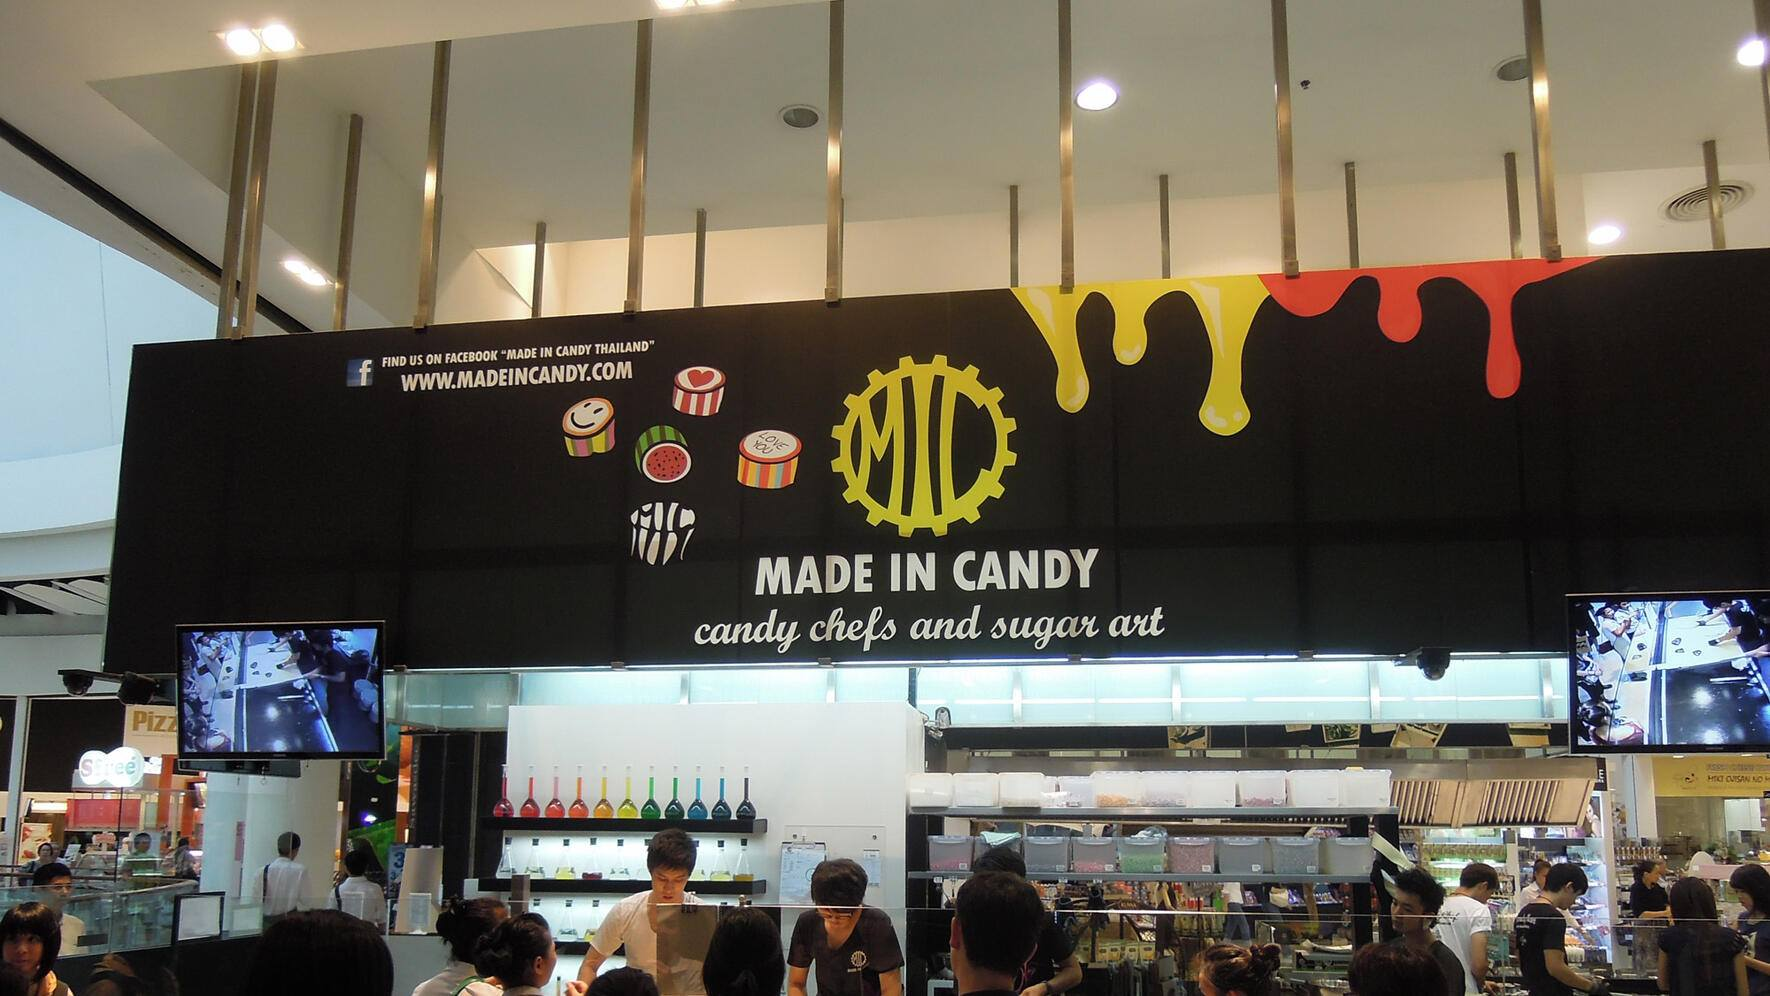 BL_Blog23: Made in Candy Shop